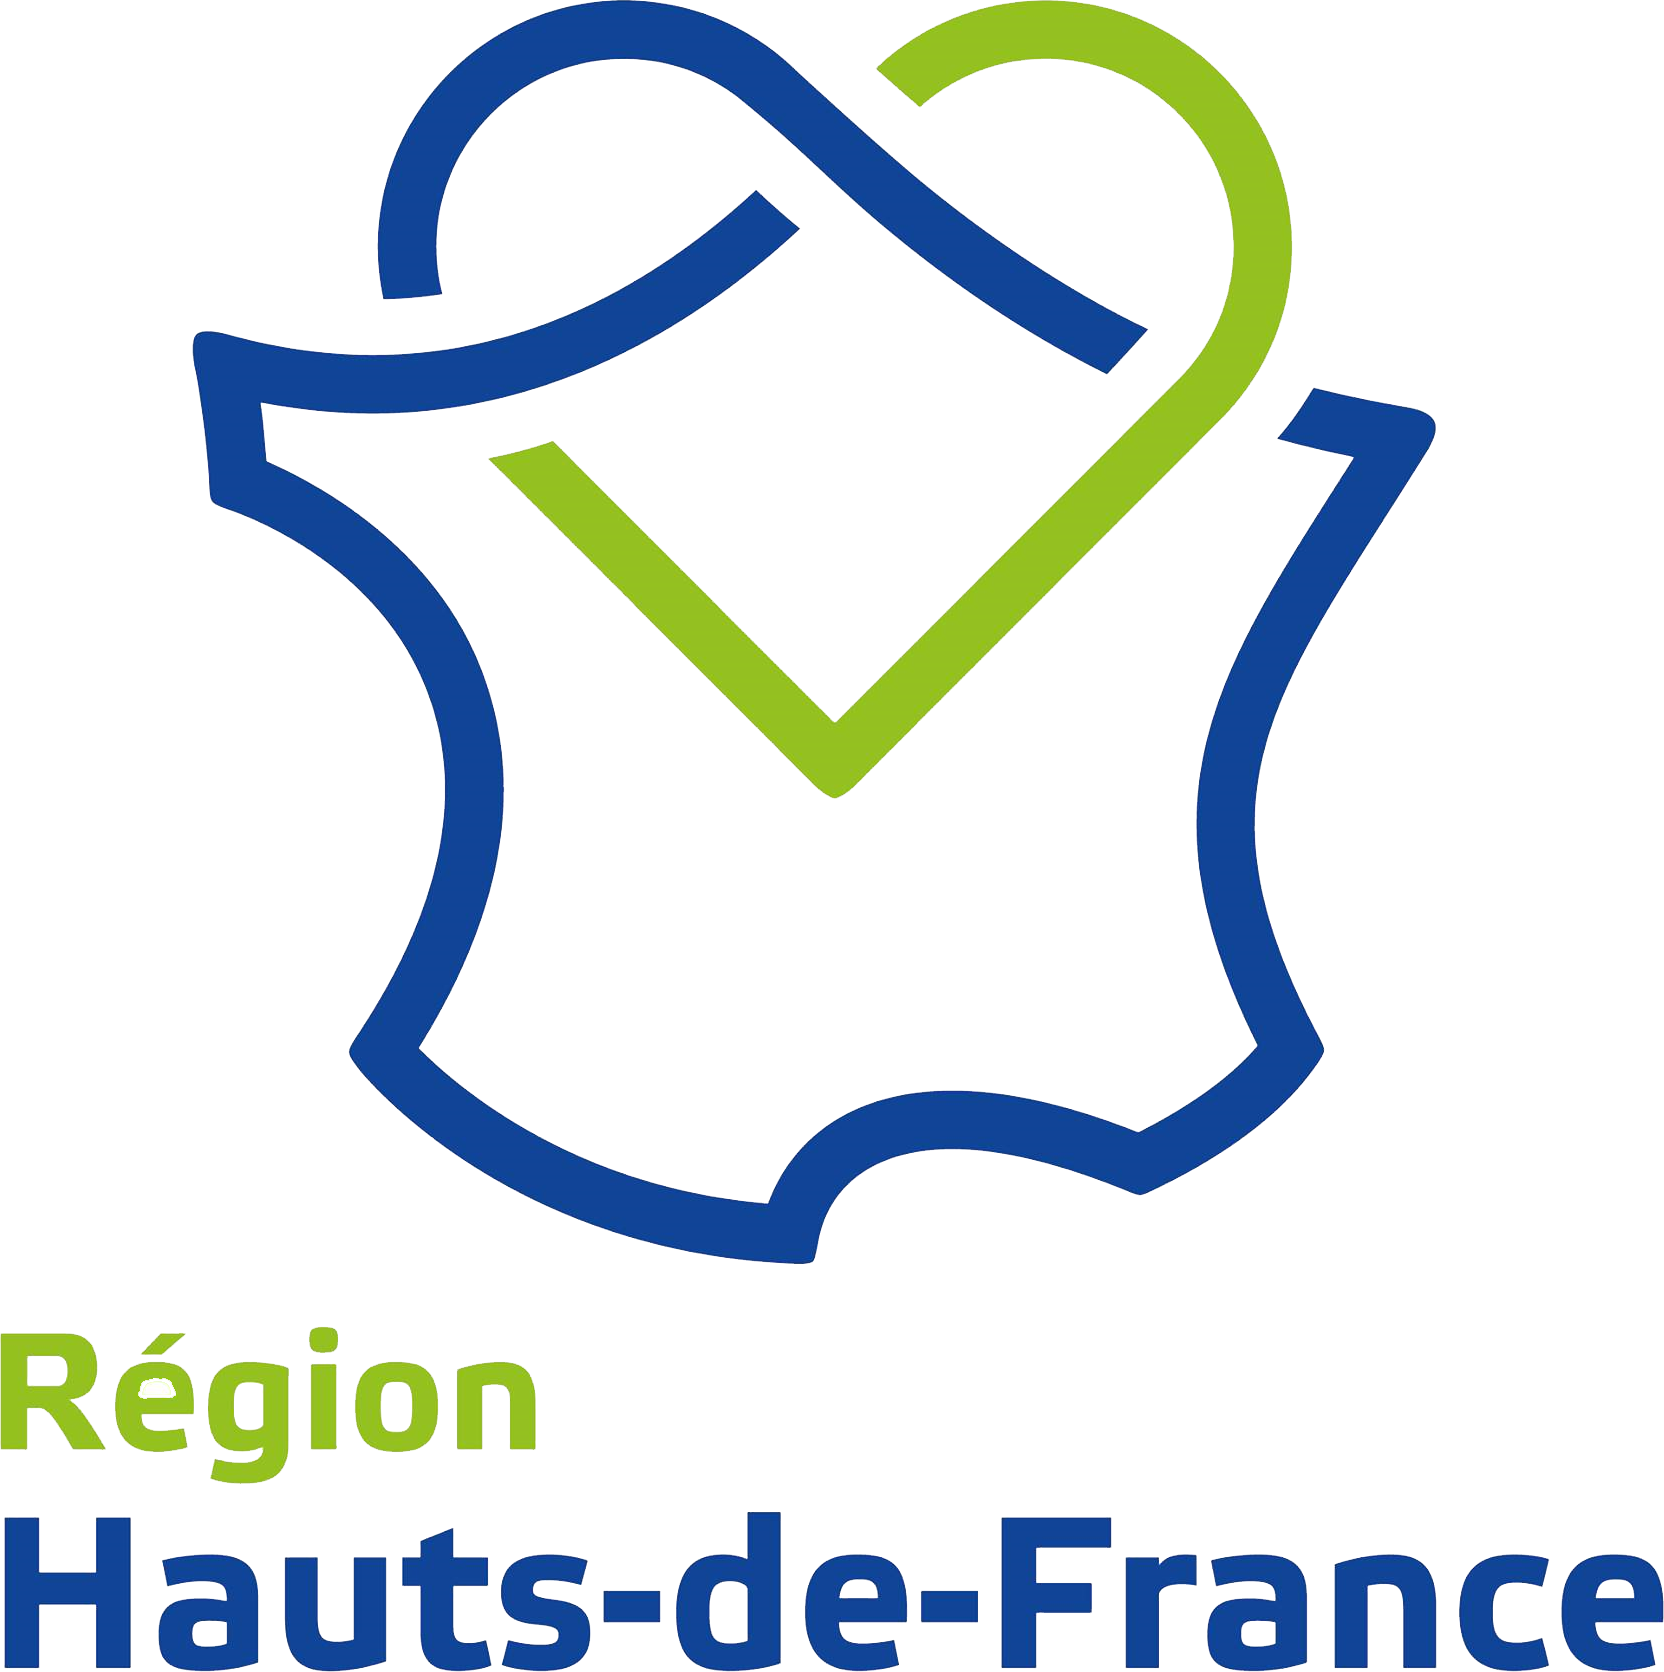 Région Rauts de France